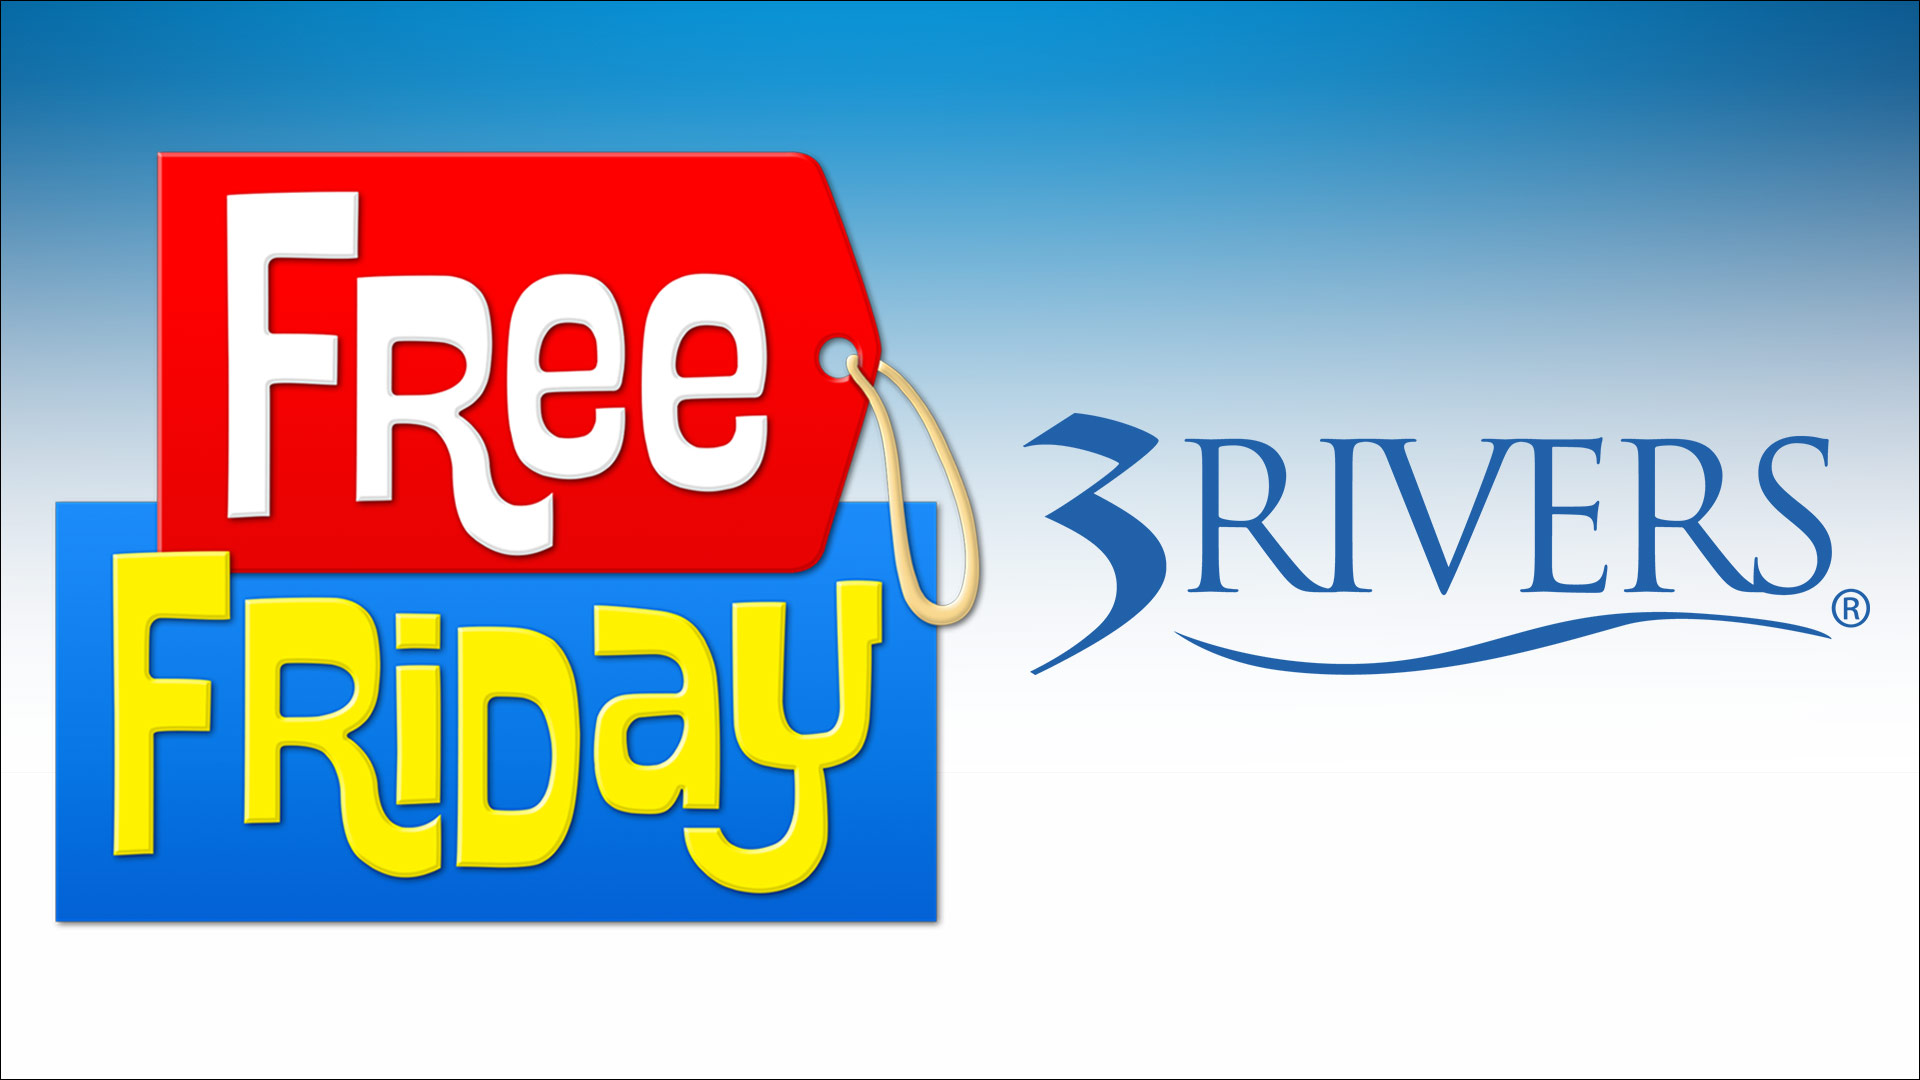 Free Friday 3 Rivers FCU_1528835177069.jpg.jpg